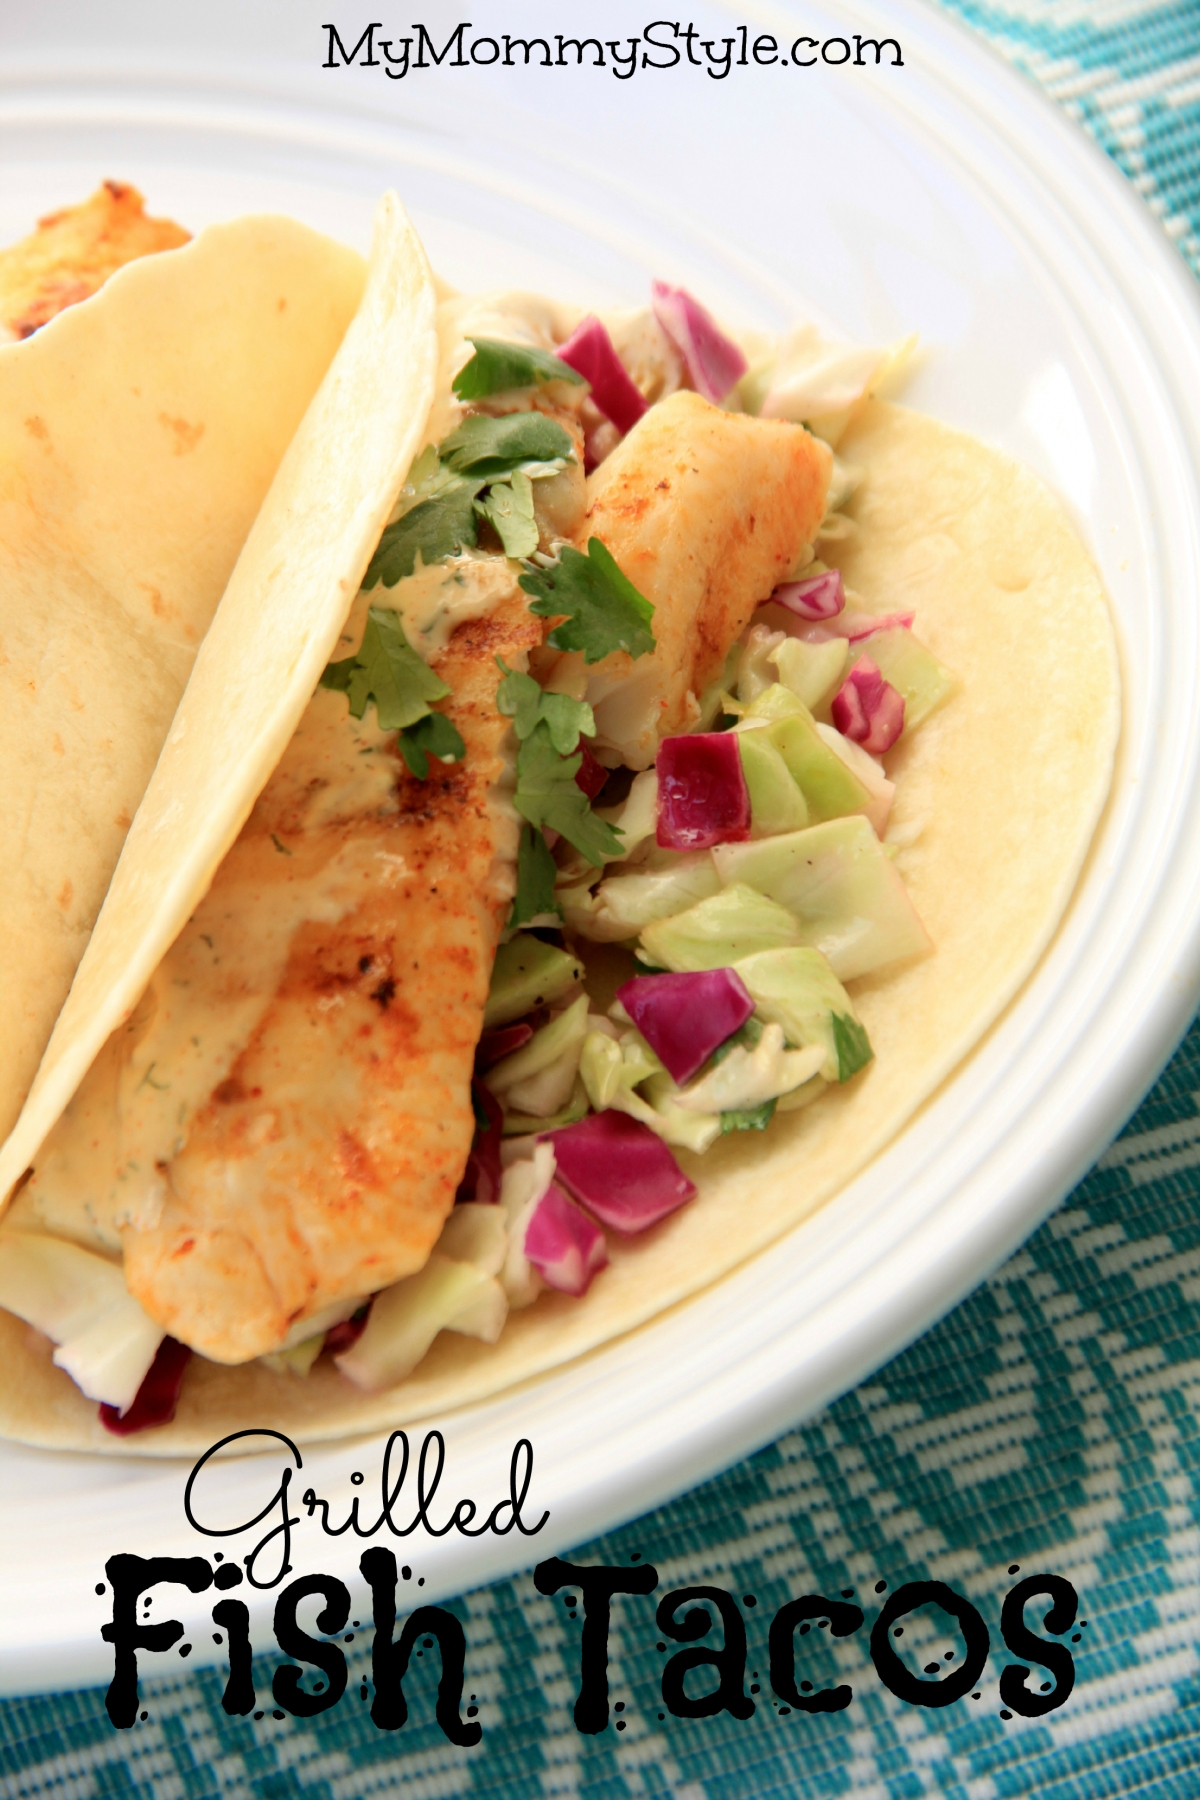 Grilled Fish Tacos - My Mommy Style